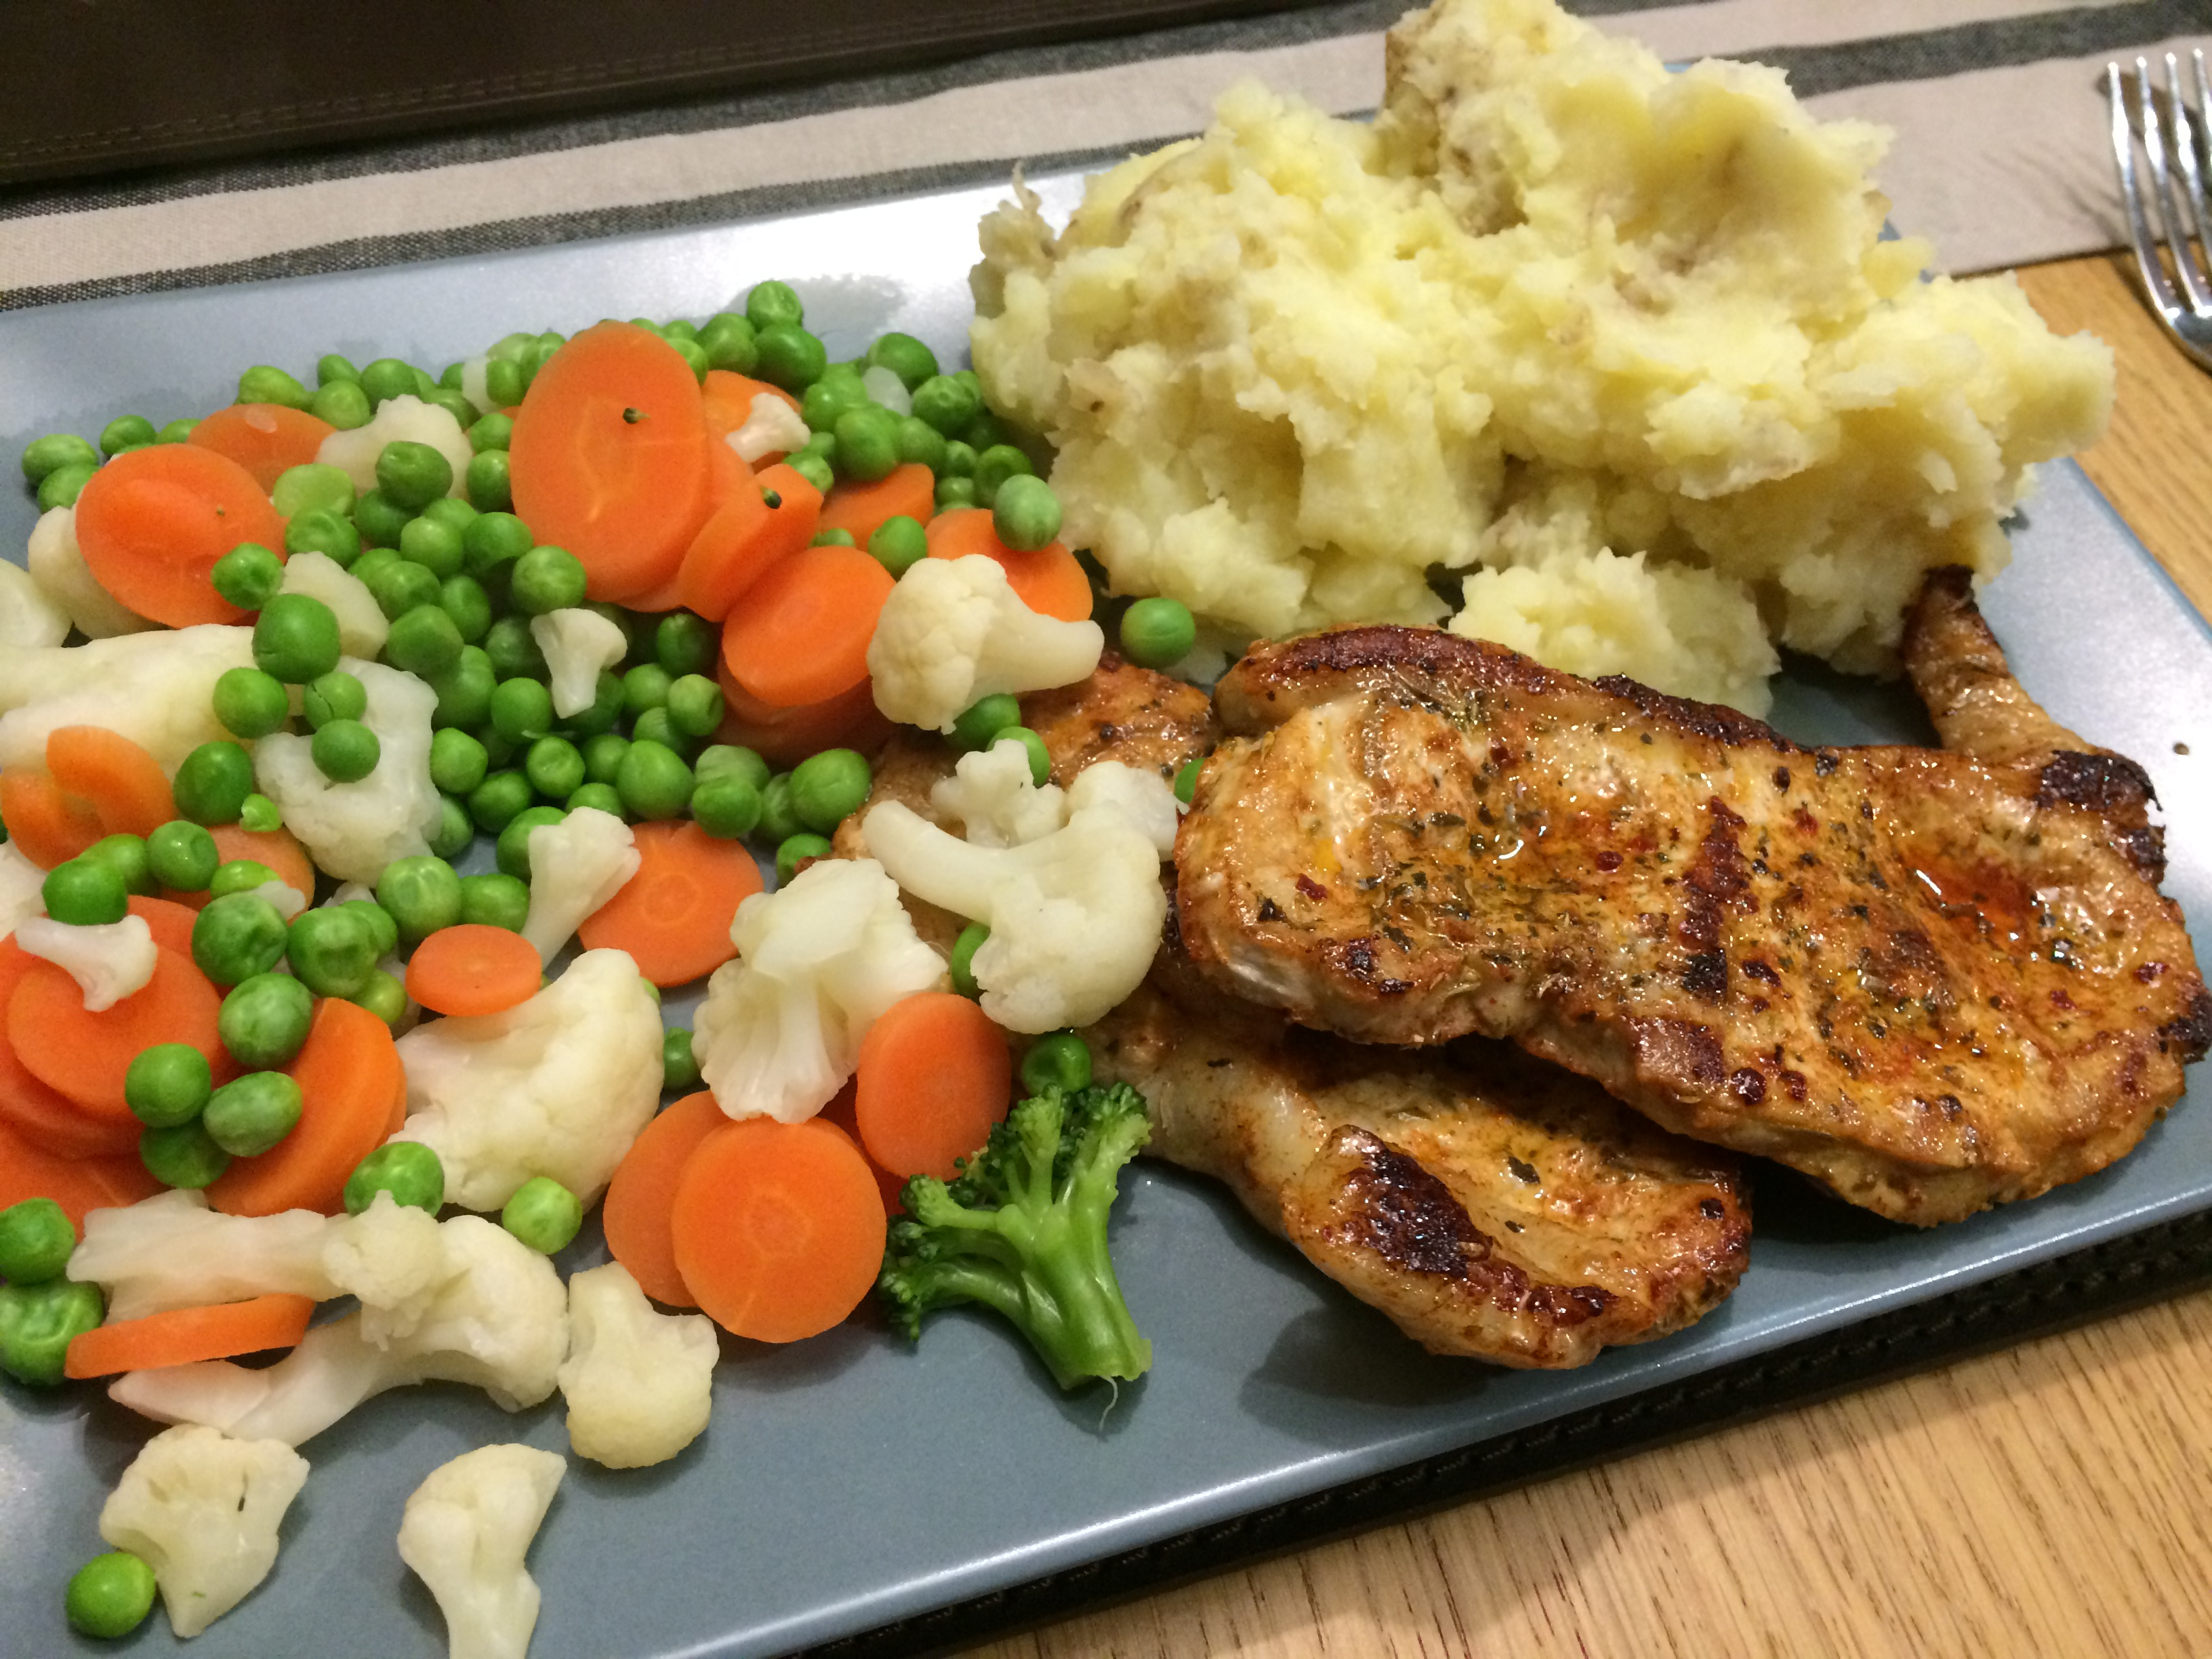 Simple Pork Chops Mashed Potato And Vegetables Swstretford